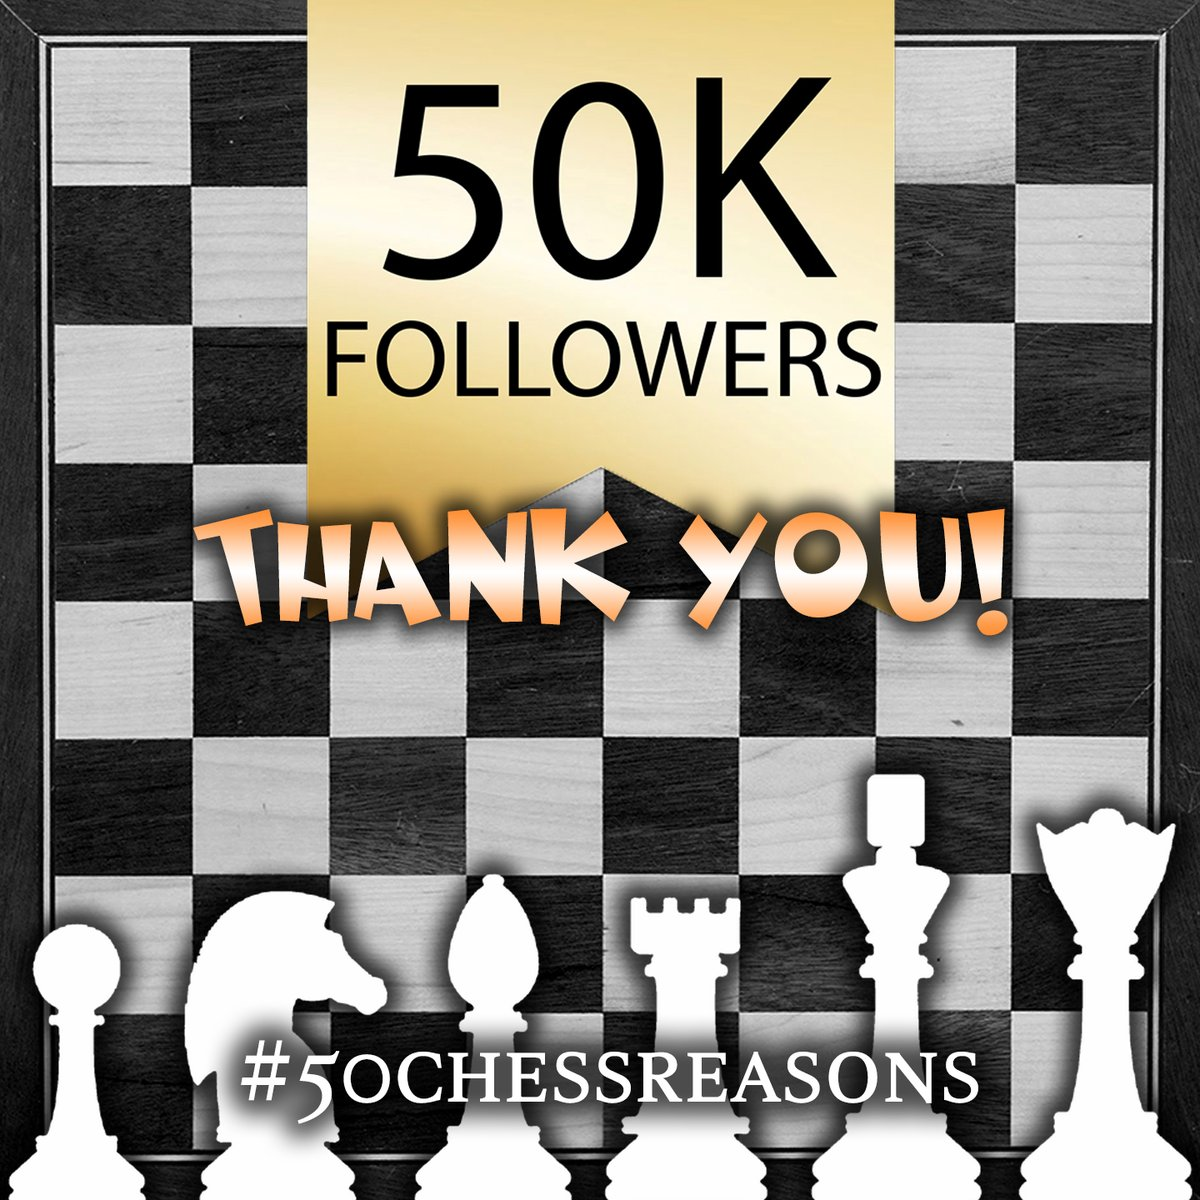 test Twitter Media - ❤ We just hit 50.000 followers on our Instagram account: https://t.co/VnhqPgIhVh  To celebrate this special occasion, we want you all to help us collect 50 reasons to play/follow/enjoy chess. Or better 5⃣0⃣0⃣0⃣0⃣!  #50chessreasons #chess #Instagram https://t.co/UYbrEp7MeJ